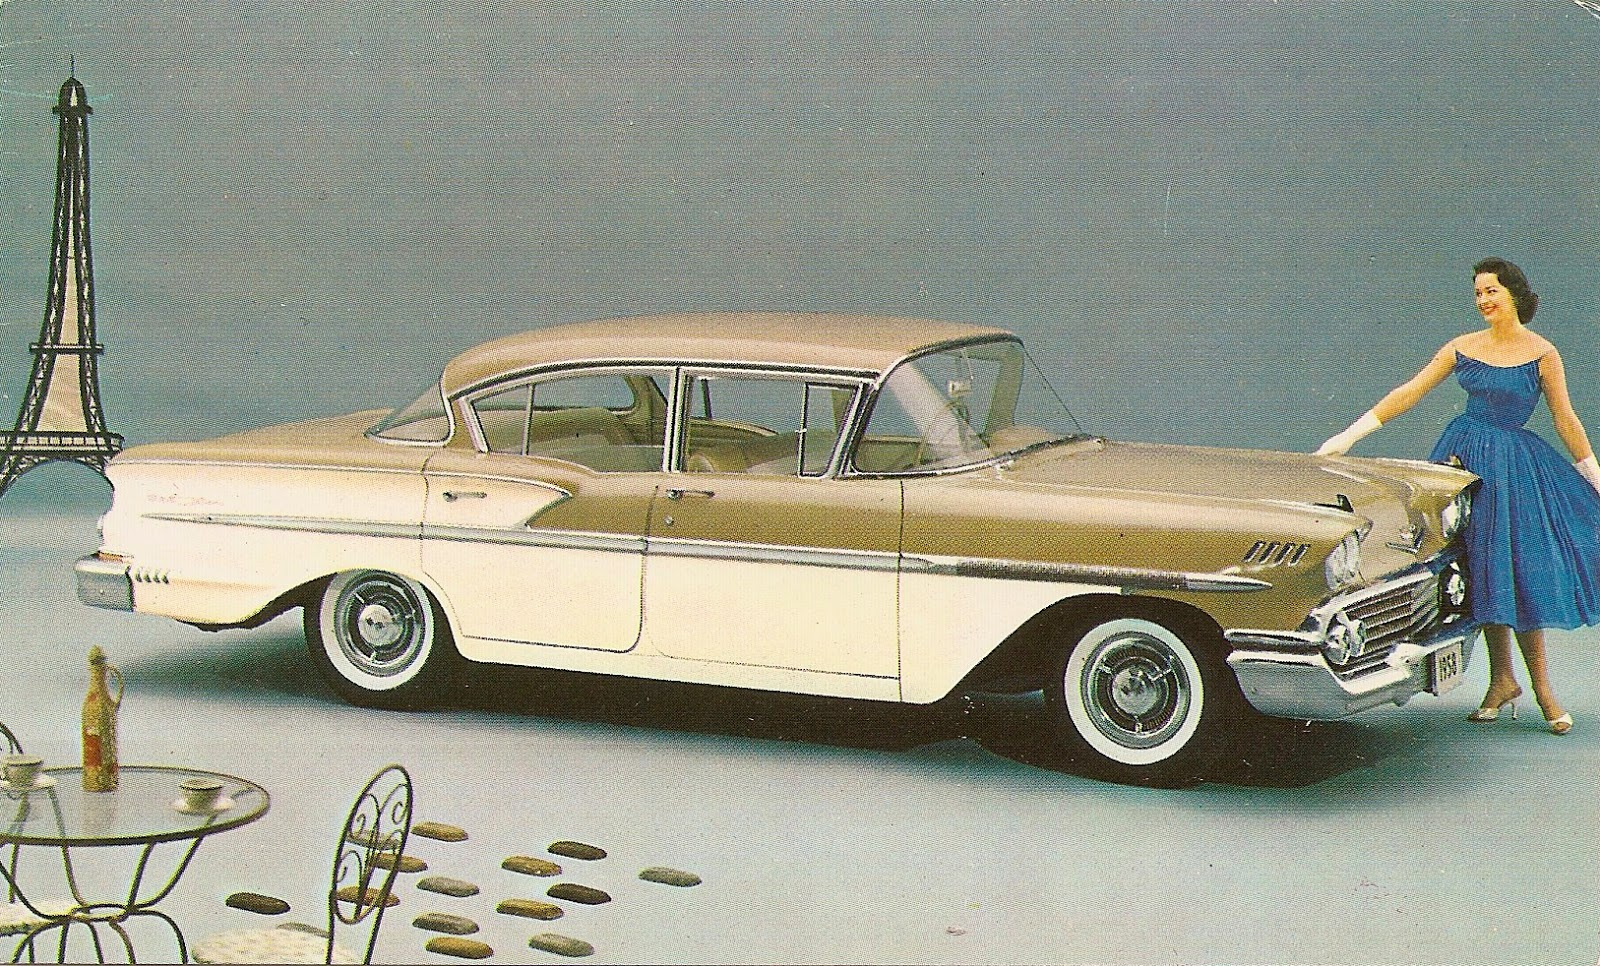 All Chevy 58 chevy bel air : Car Culture Notebook: 1958 CHEVY BEL AIR: The Anatomy of a Sales ...